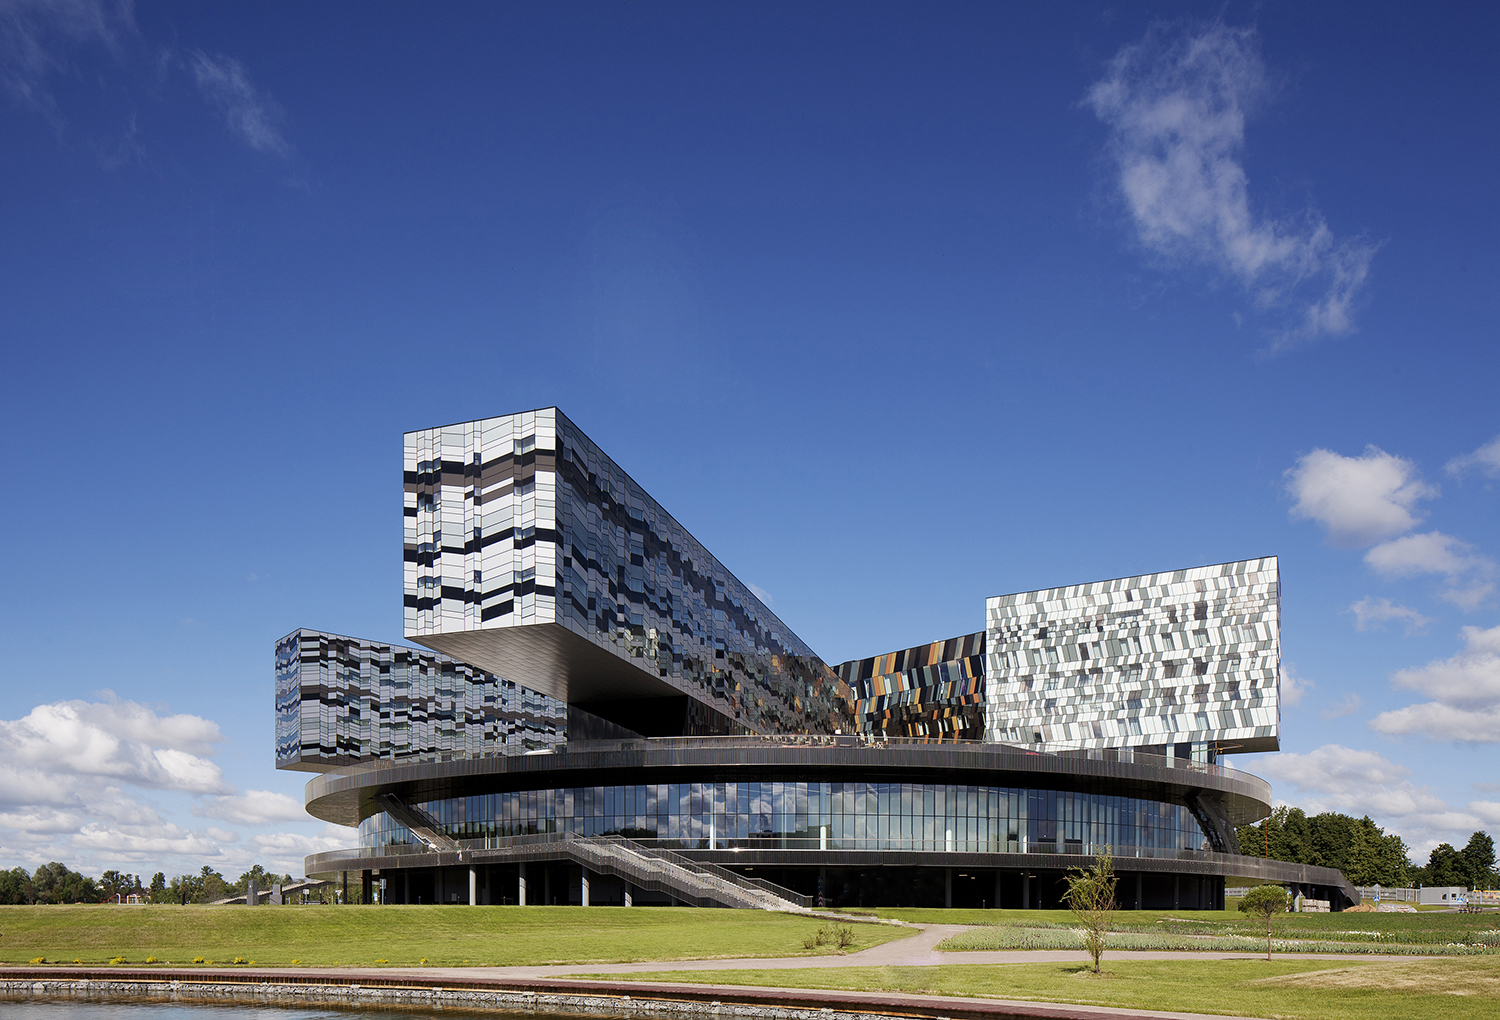 Moscow School of Management, Skolkovo, Russia, 2010. ©Ed Reeve, courtesy of Adjaye Associates.